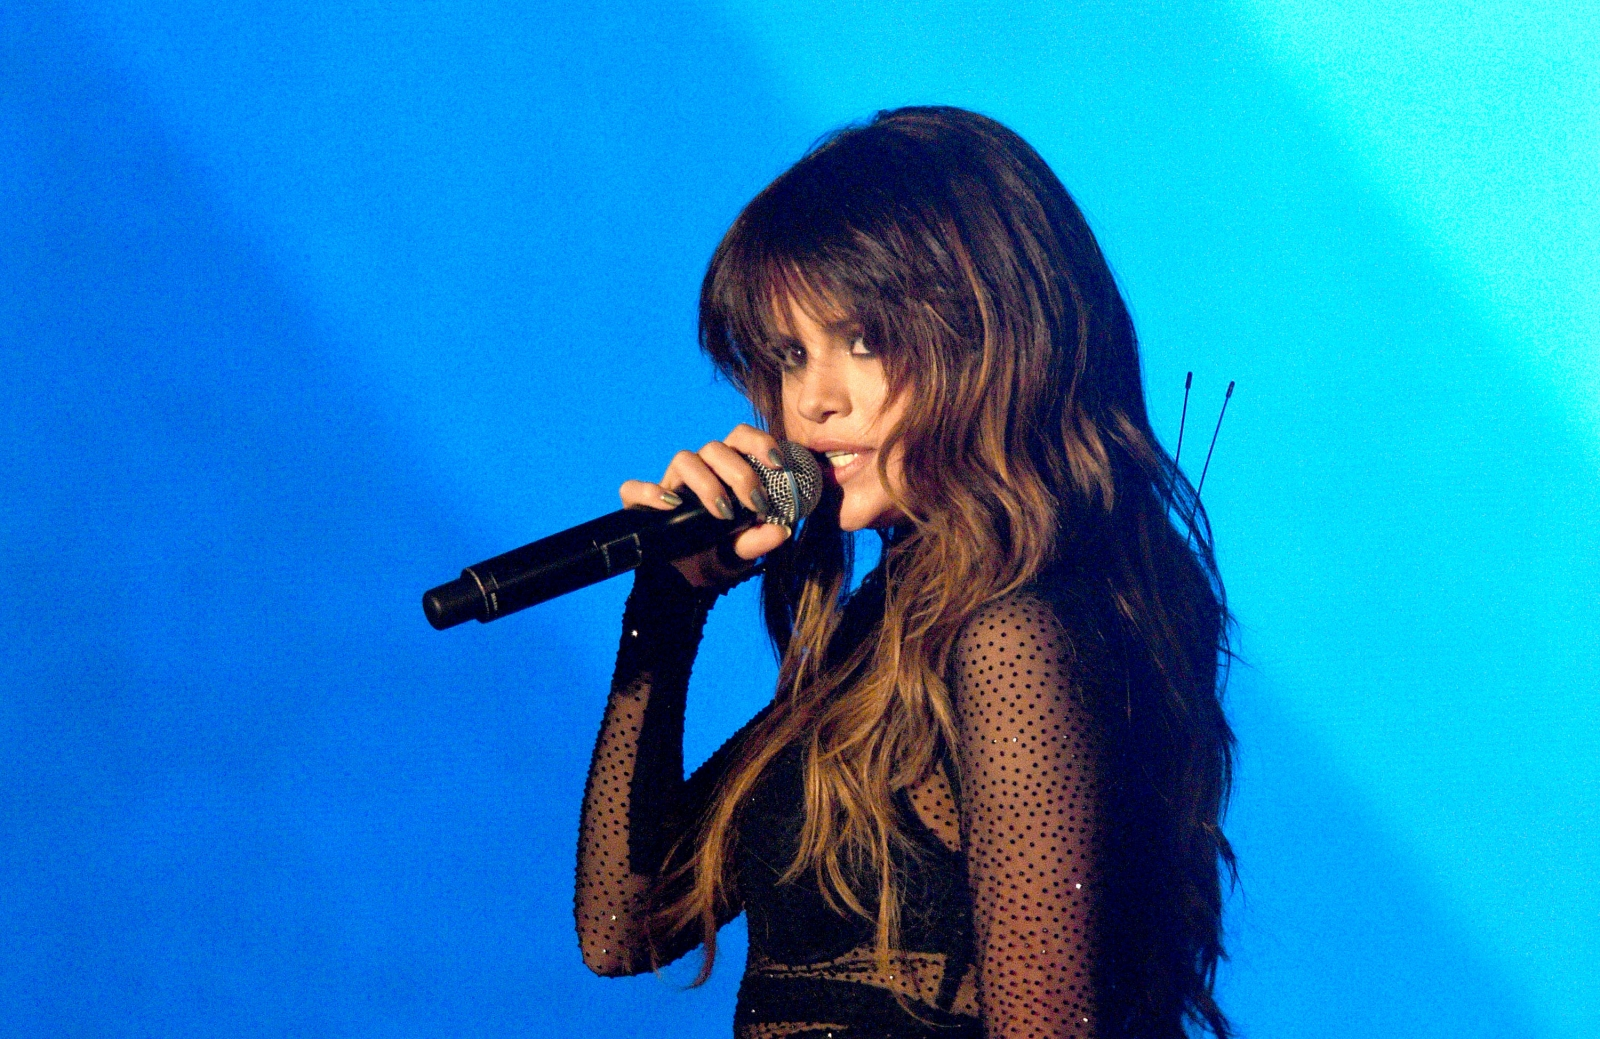 Selena Gomez posts a mysterious message on Instagram